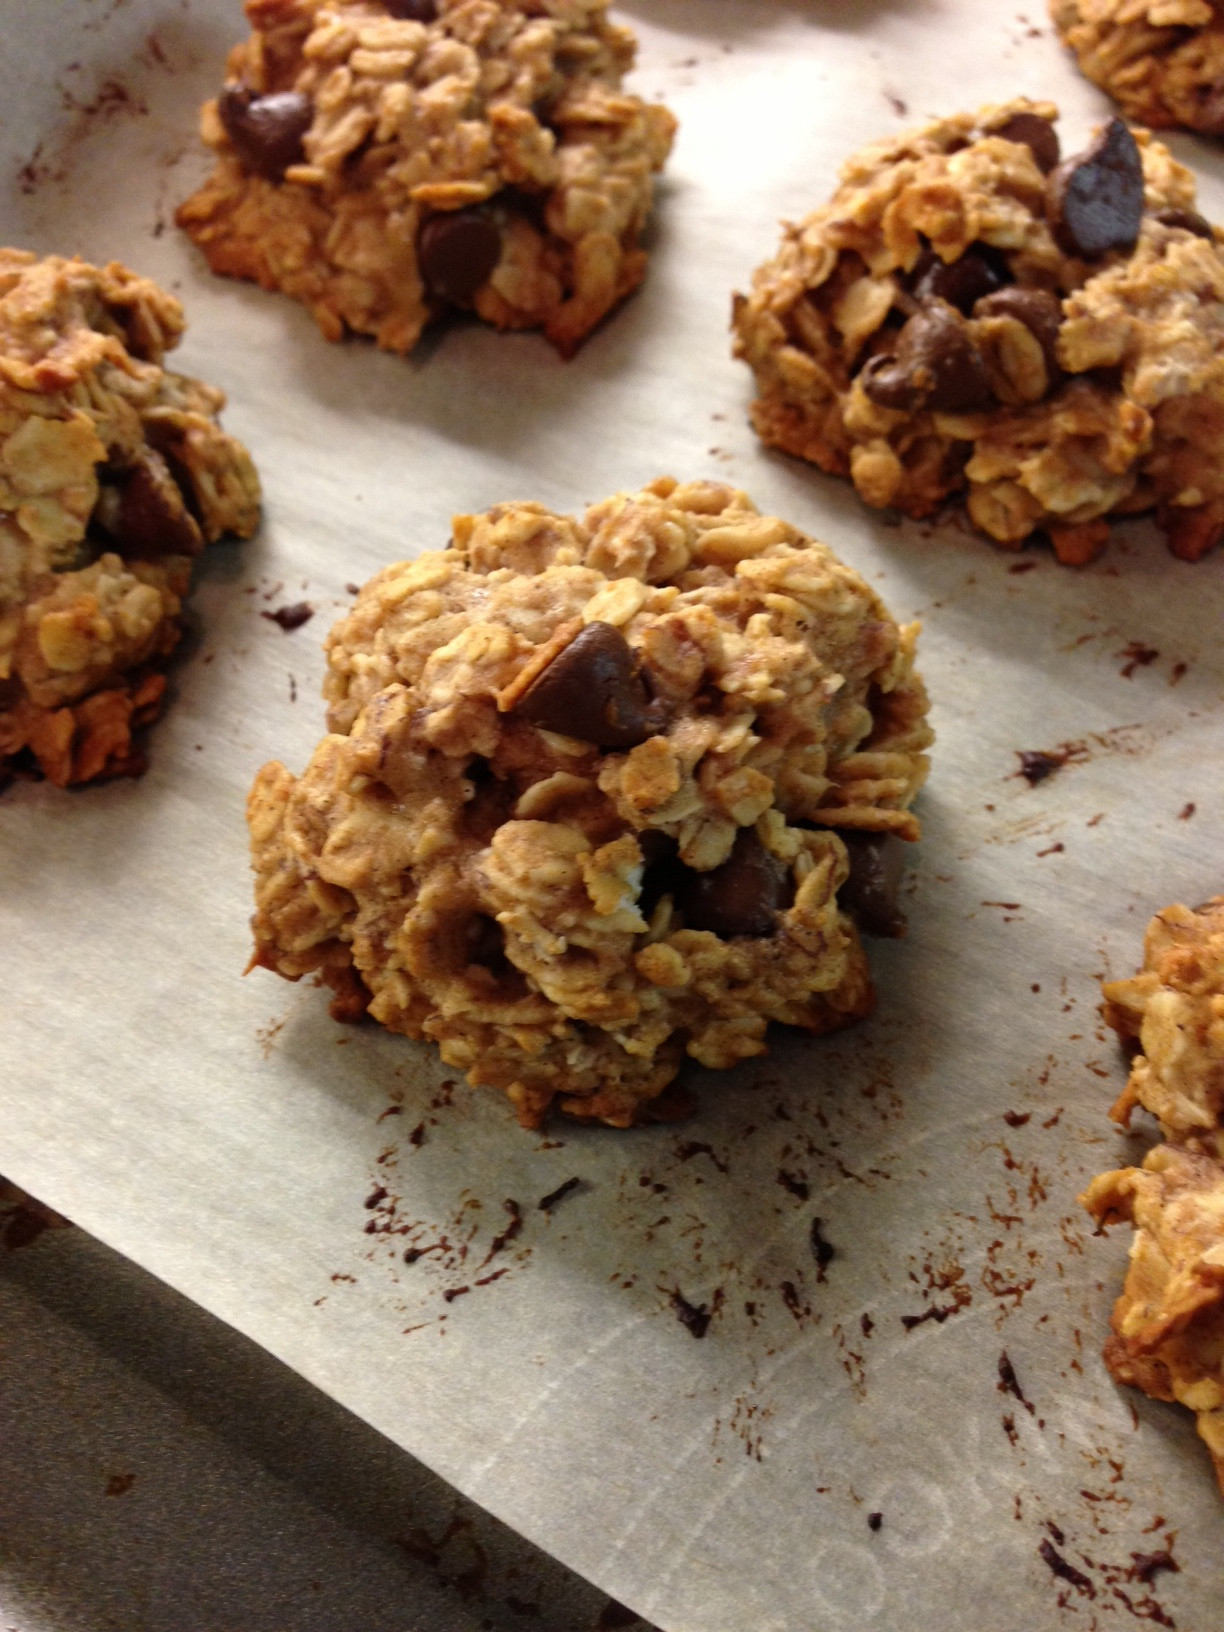 Oatmeal Chocolate Chip Cookies Healthy  Healthy Oatmeal Chocolate Chip Cookies Lauren Follett